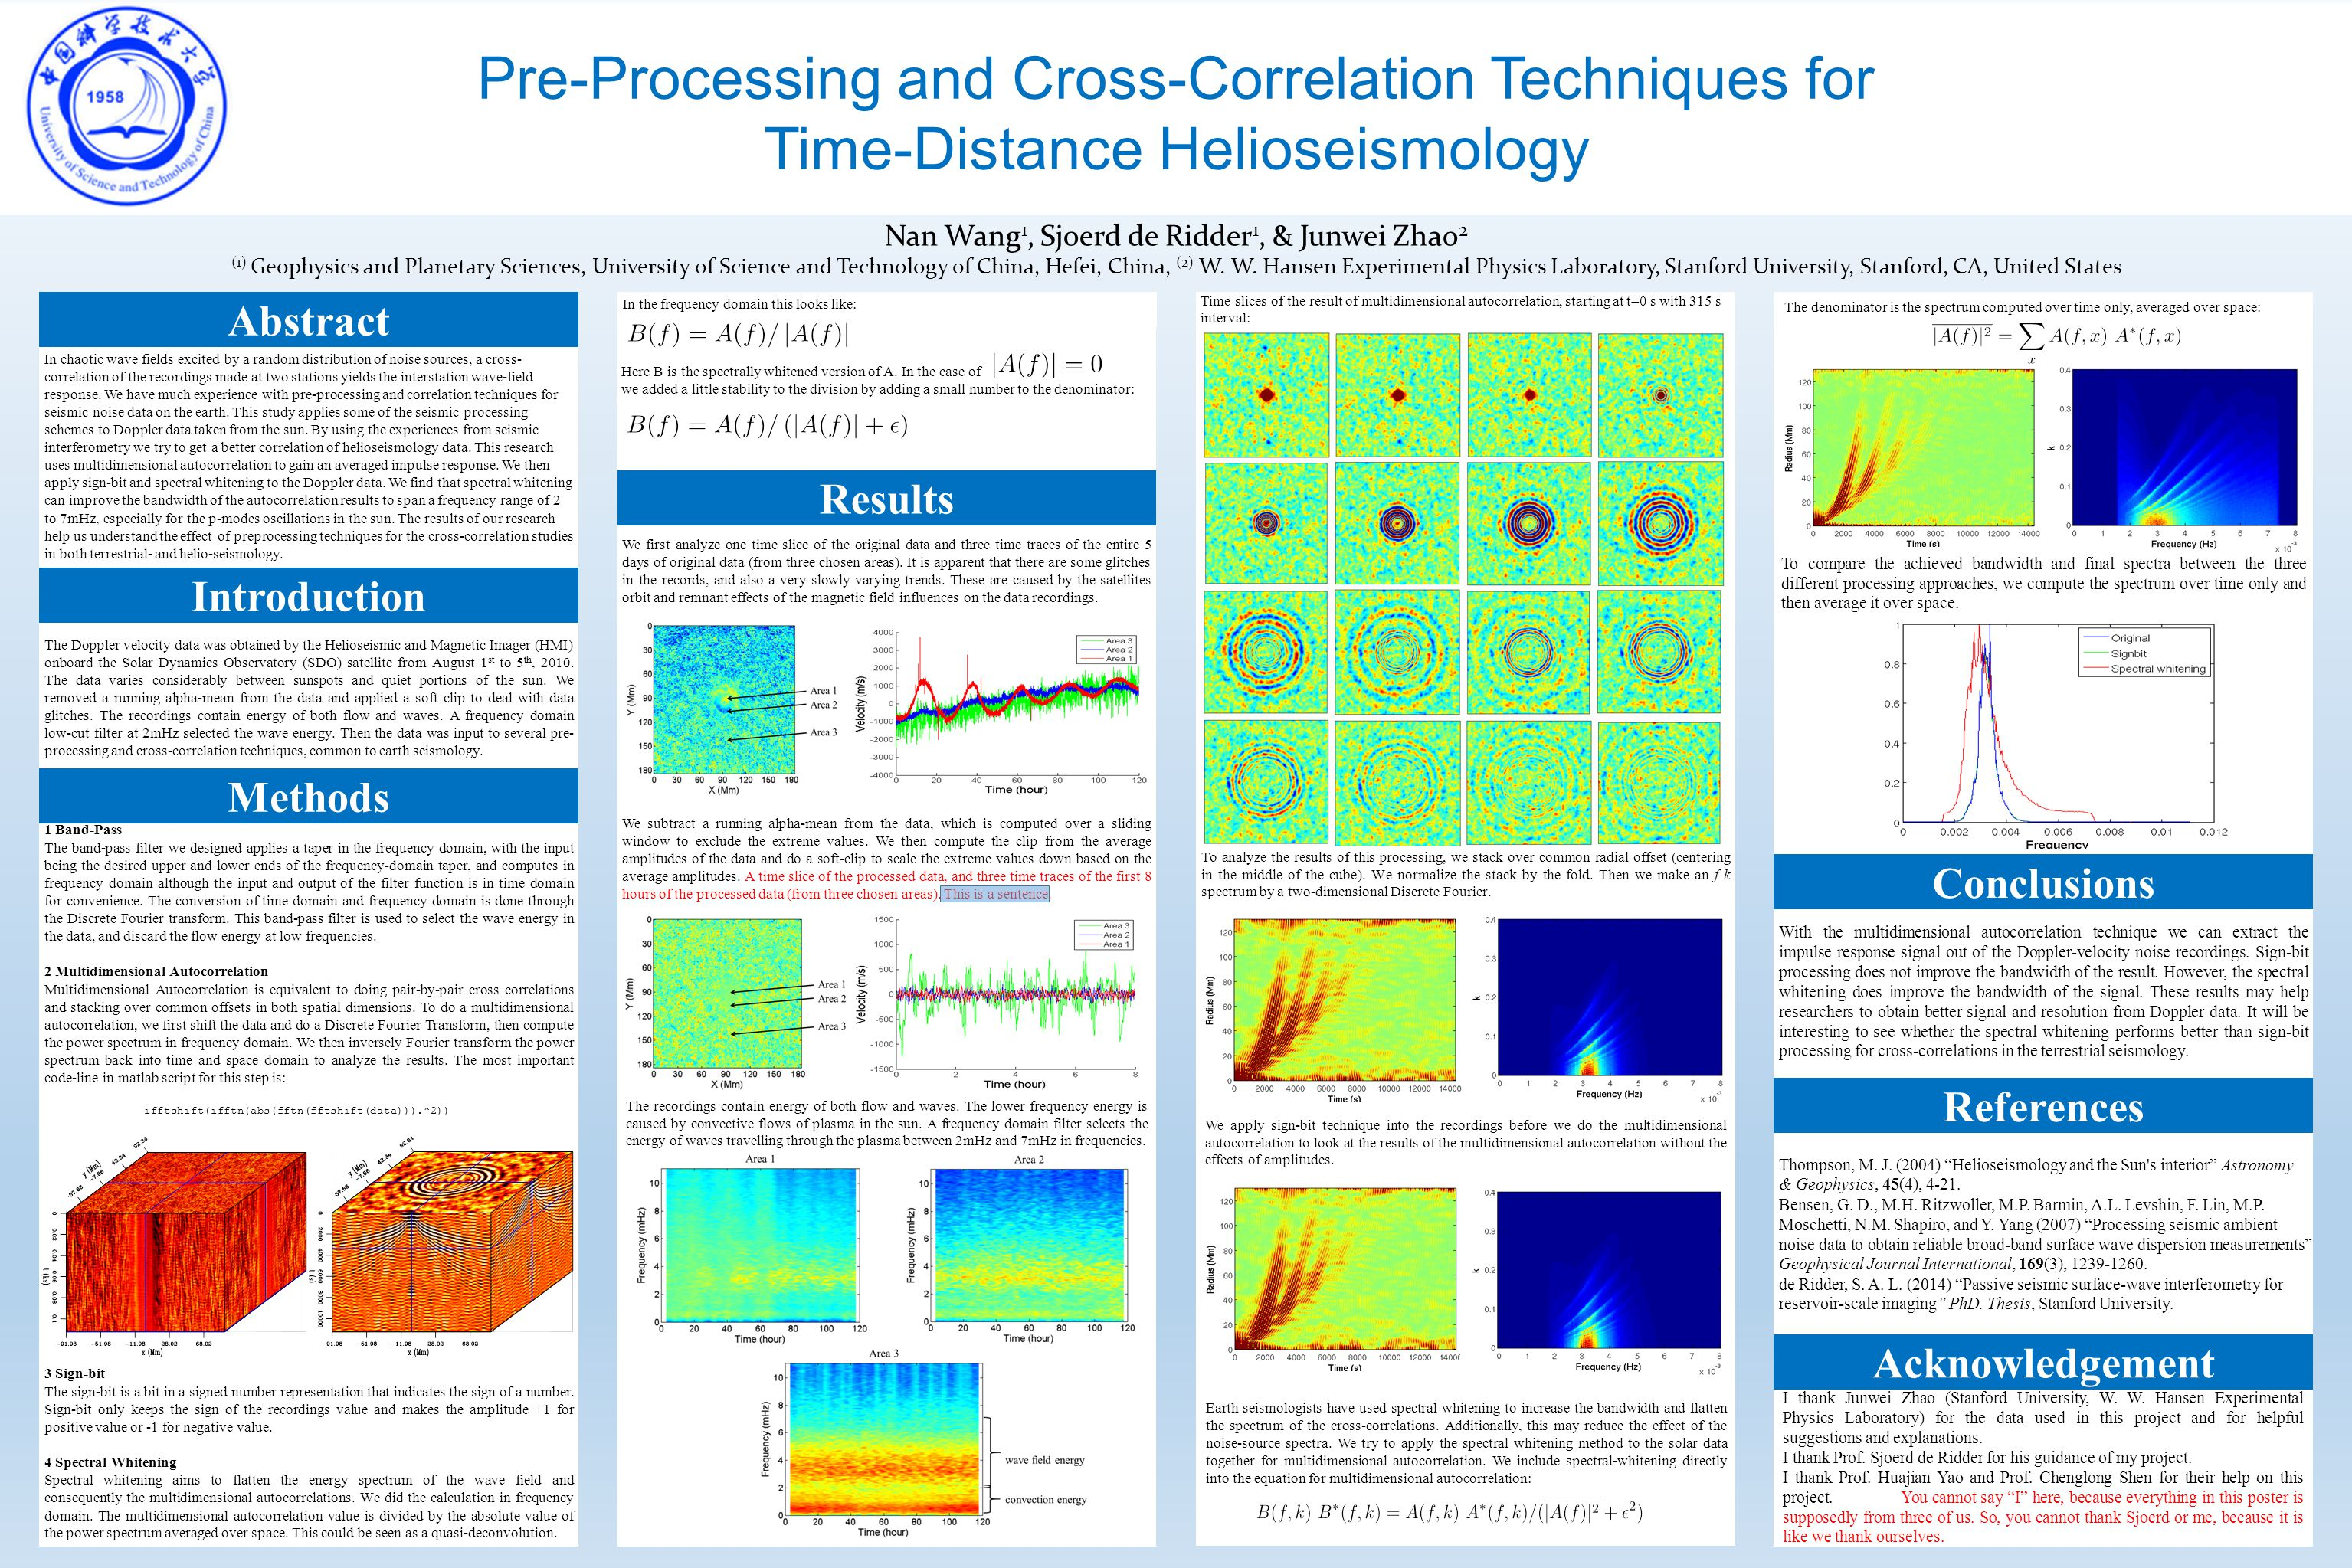 Pre-Processing and Cross-Correlation Techniques for Time-Distance Helioseismology Nan Wang 1, Sjoerd de Ridder 1, & Junwei Zhao 2 (1) Geophysics and Planetary Sciences, University of Science and Technology of China, Hefei, China, (2) W.